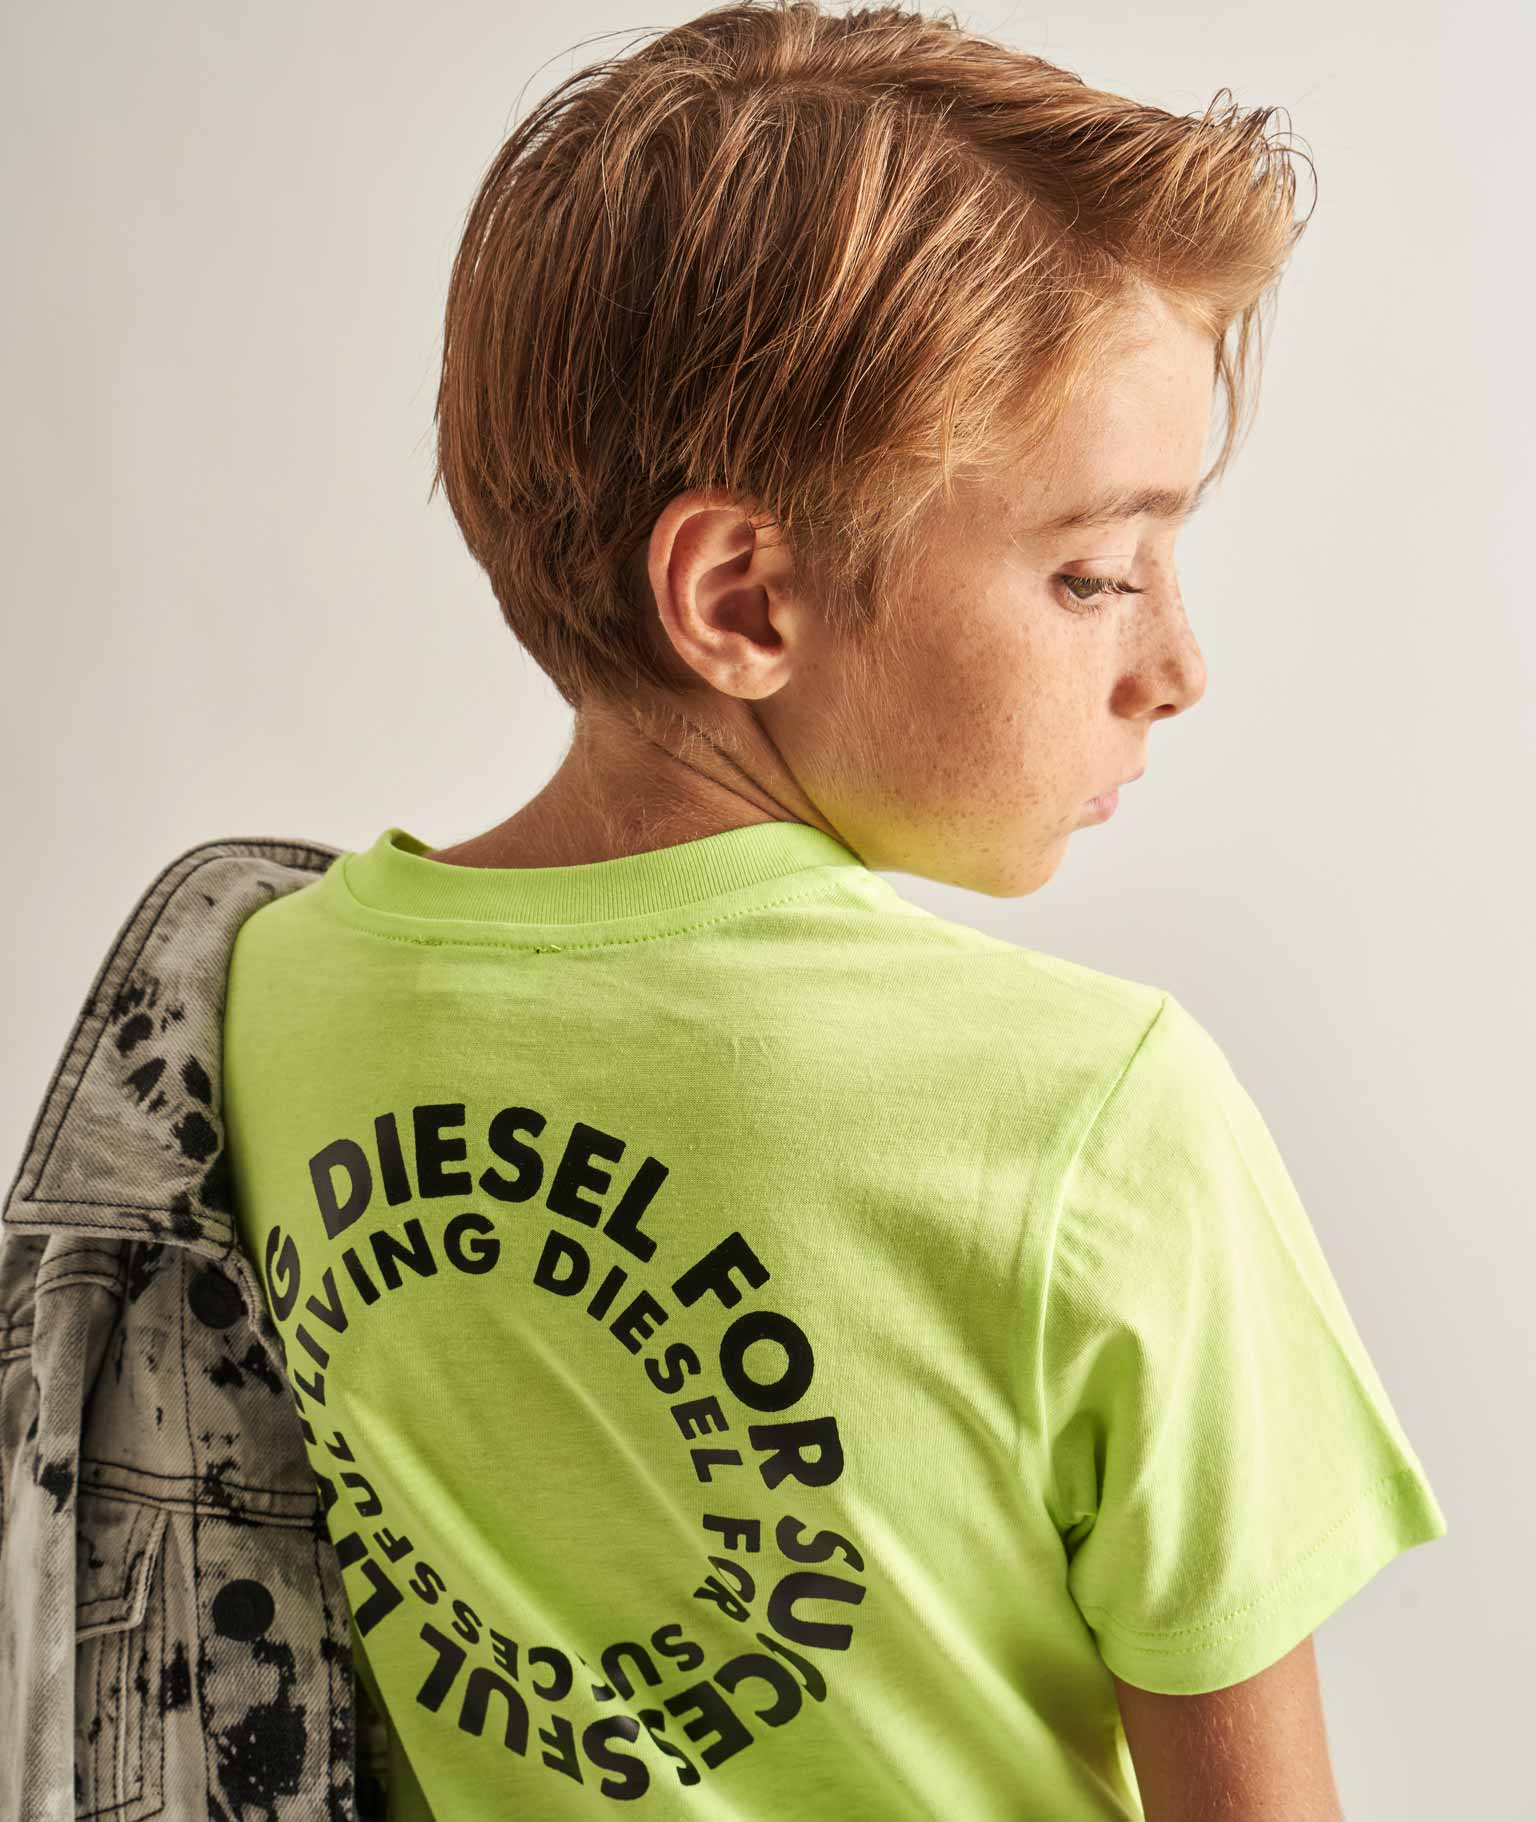 Shop on Diesel.com